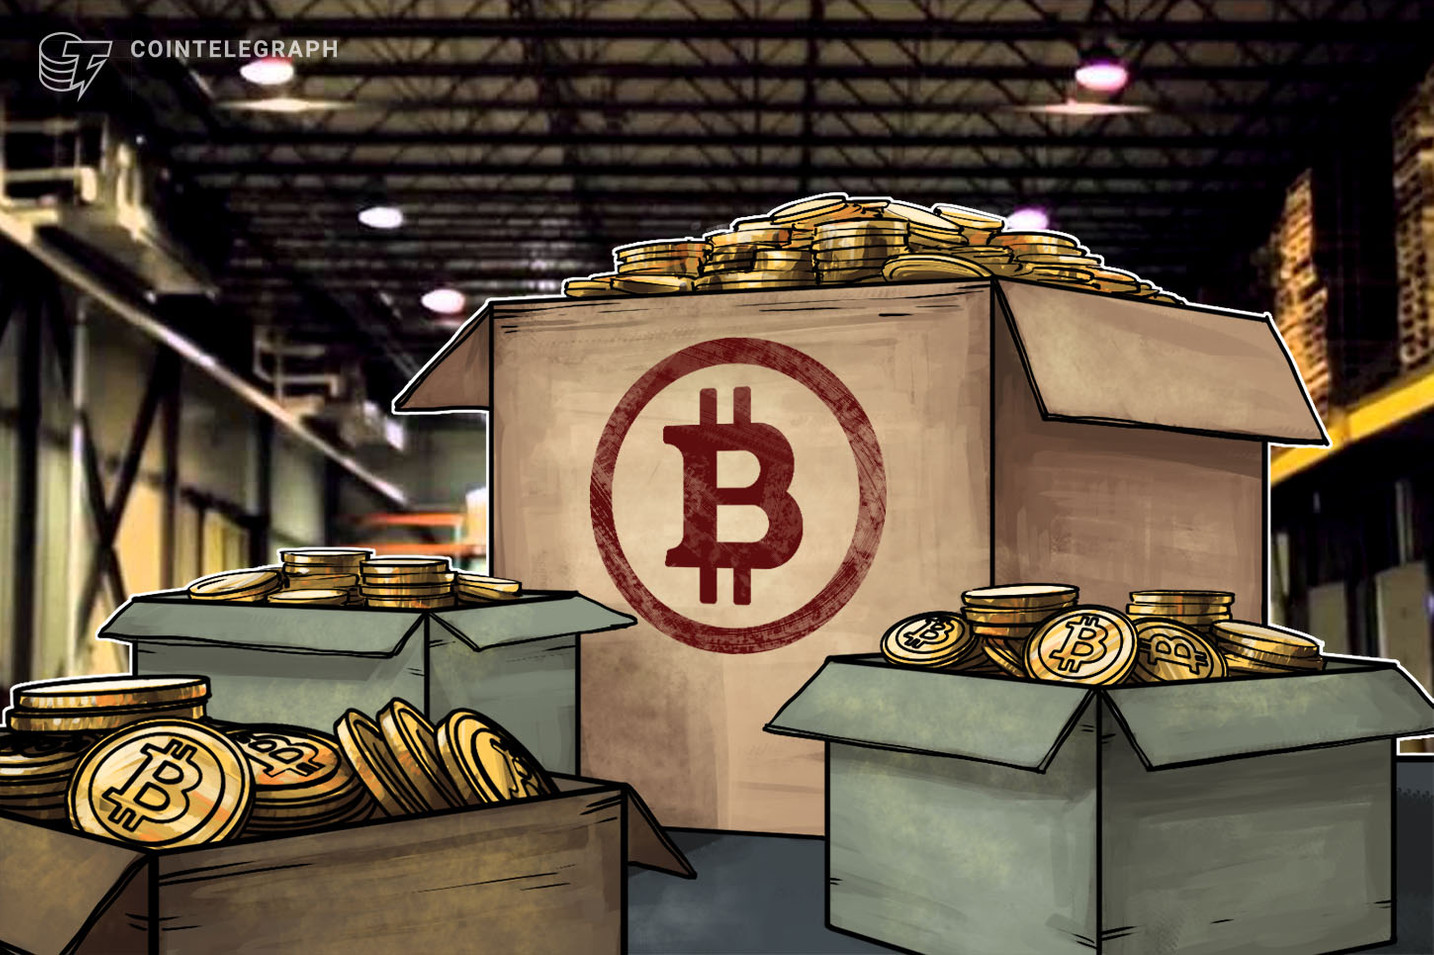 Urgent plea to prevent auction of $1.6B Bitcoin seized from Silk Road hacker